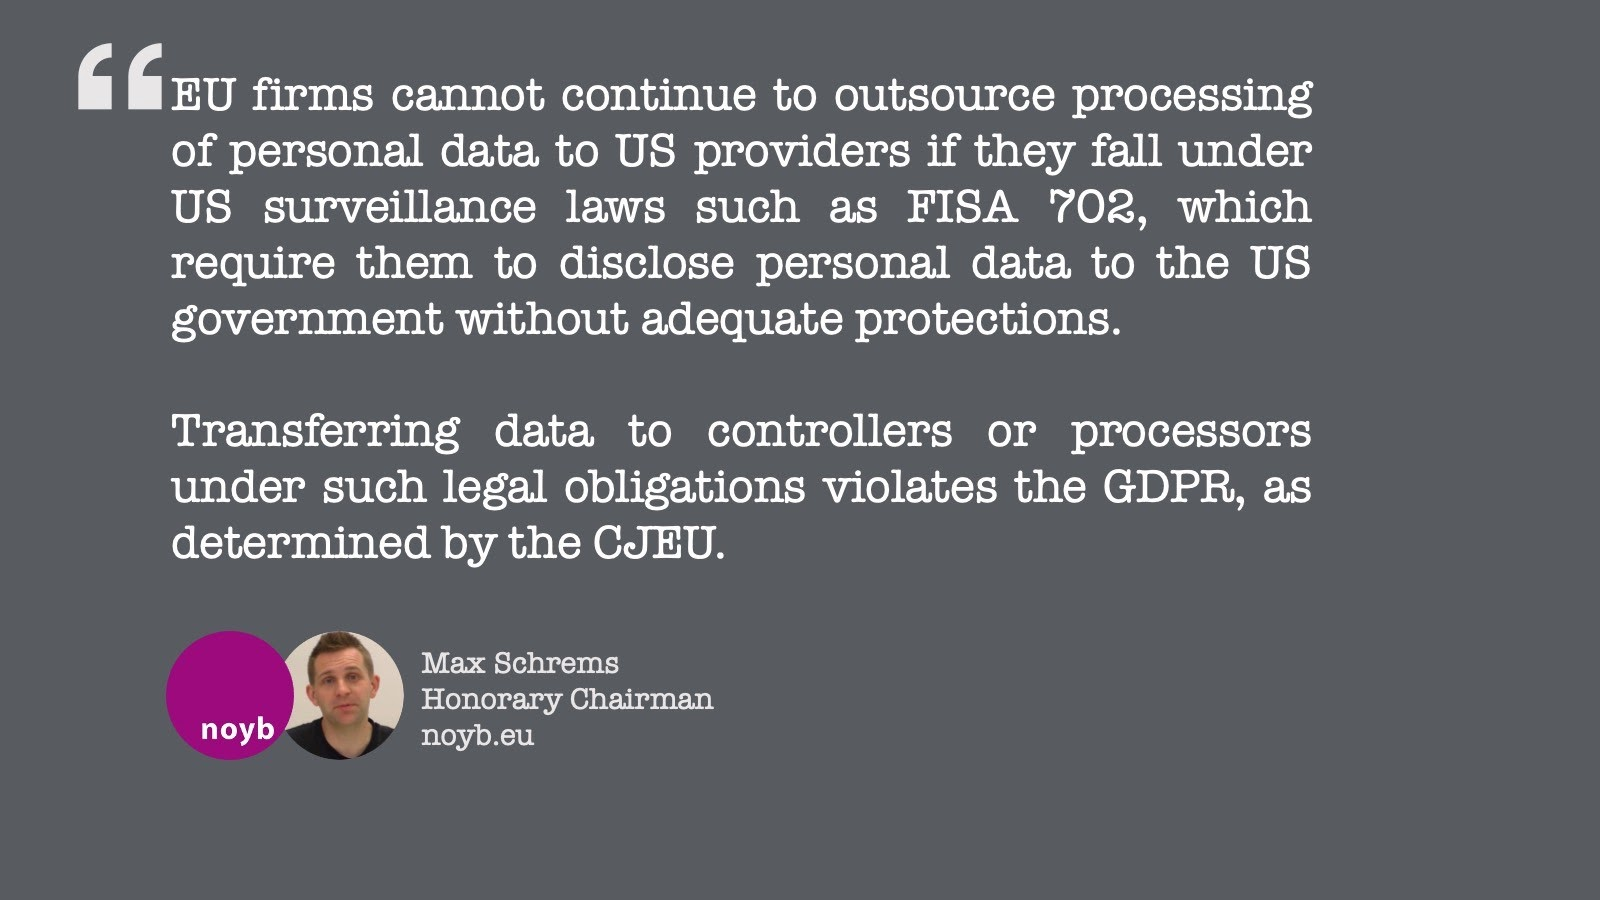 HC Max Schrems (NOYB) quote on the fact that EU firms cannot continue outsource the processing of personal data with PS firms